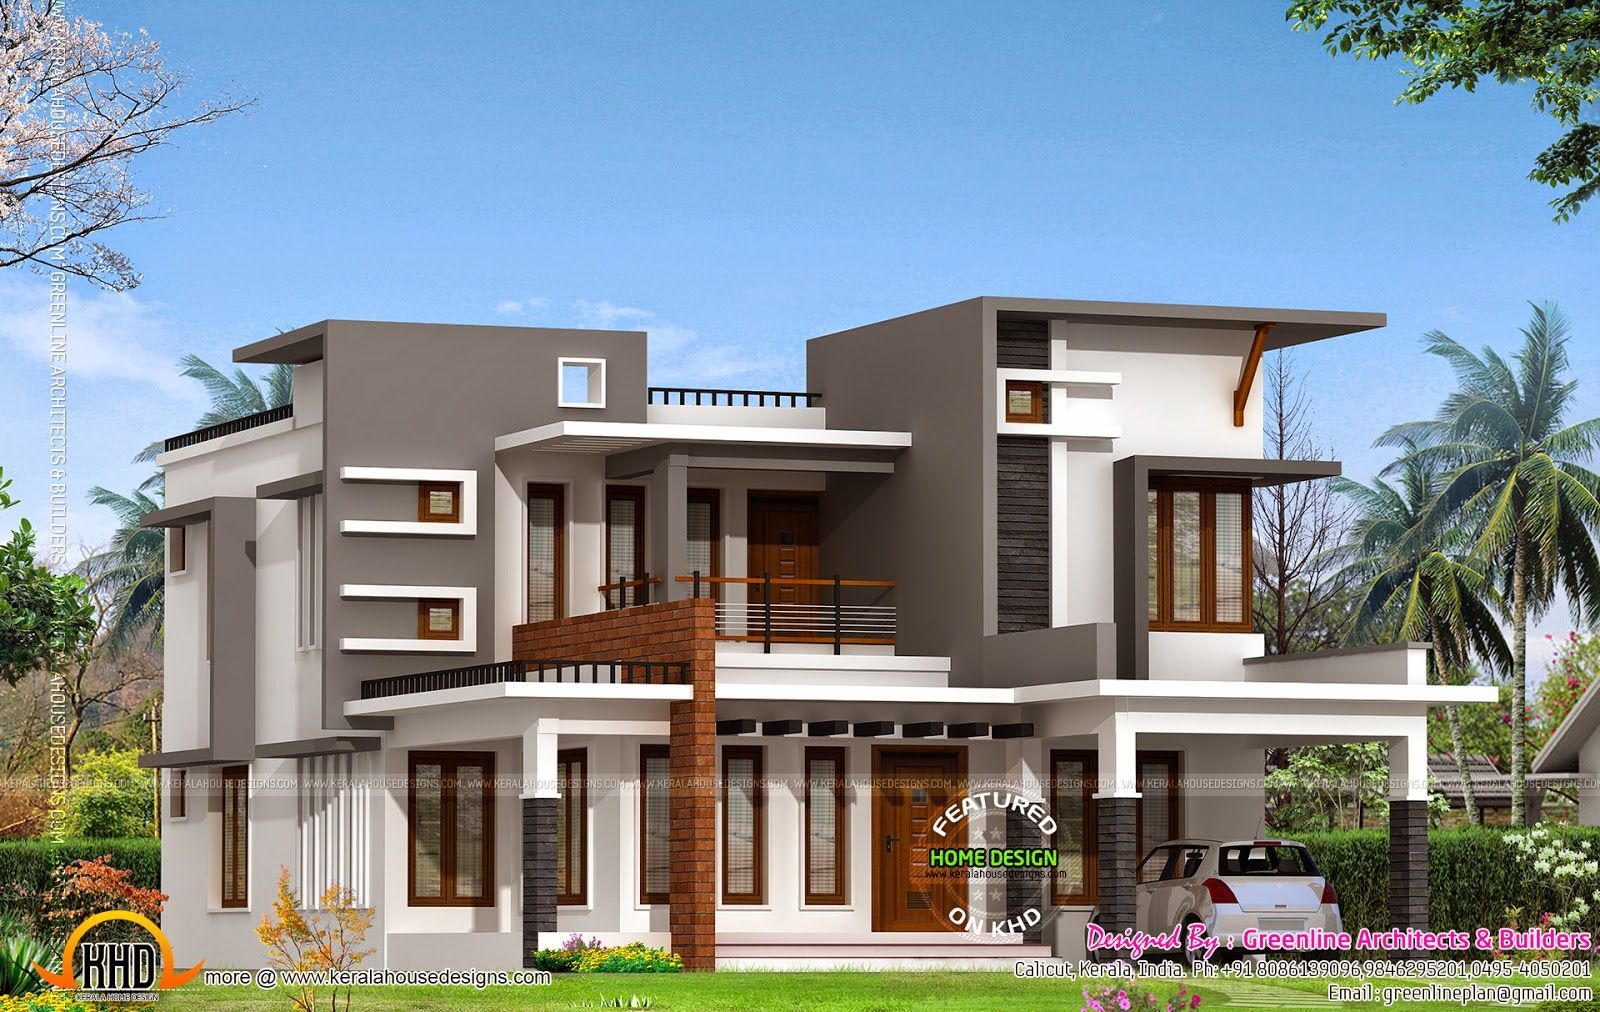 Contemporary House With Estimate Kerala Home Design And Floor Plans Villa Free Kerala House Design Indian Home Design Indian Homes